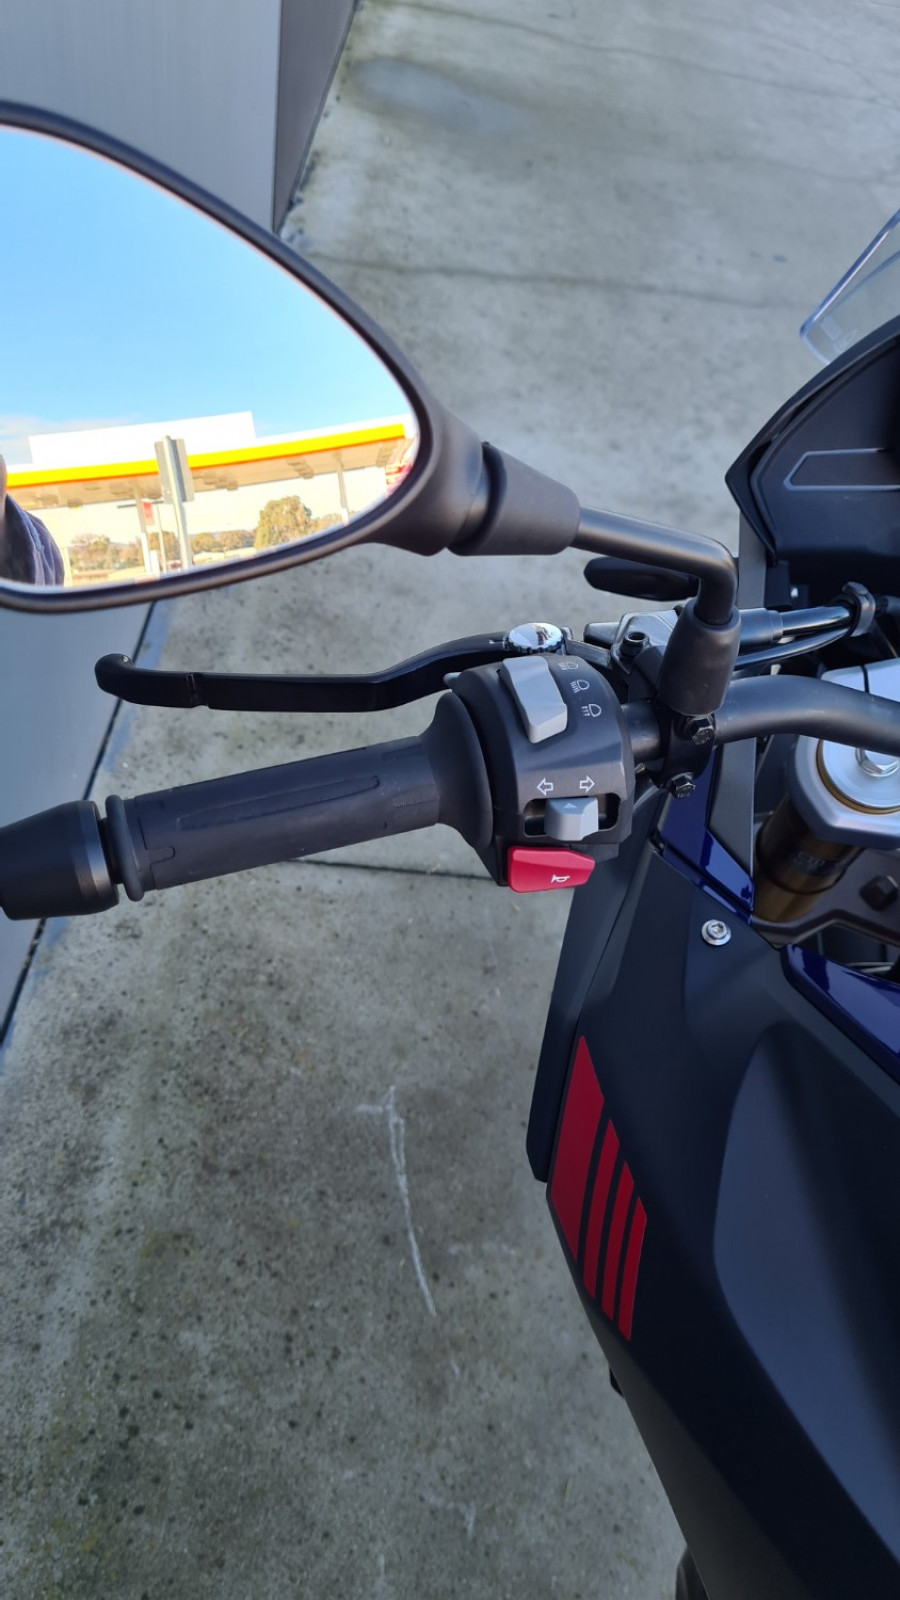 2021 BMW G 310 GS G G 310 GS Motorcycle Image 11